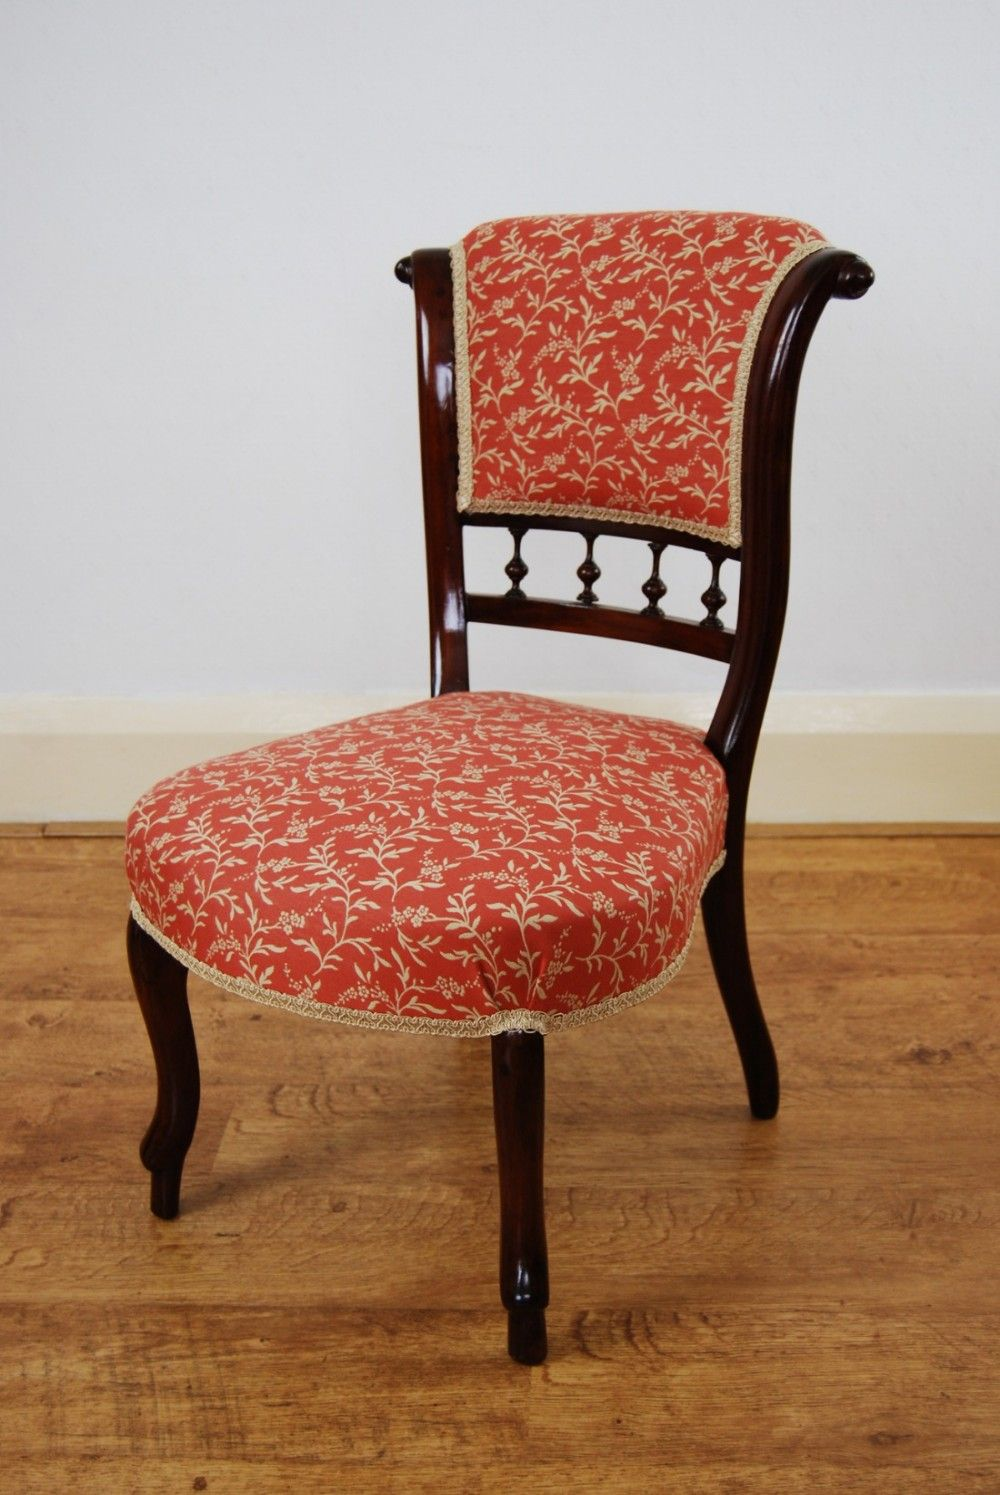 High Quality Victorian Occasional Chair Of Small Proportions, In Linwood Fabric   Sold  By The Sitting Place